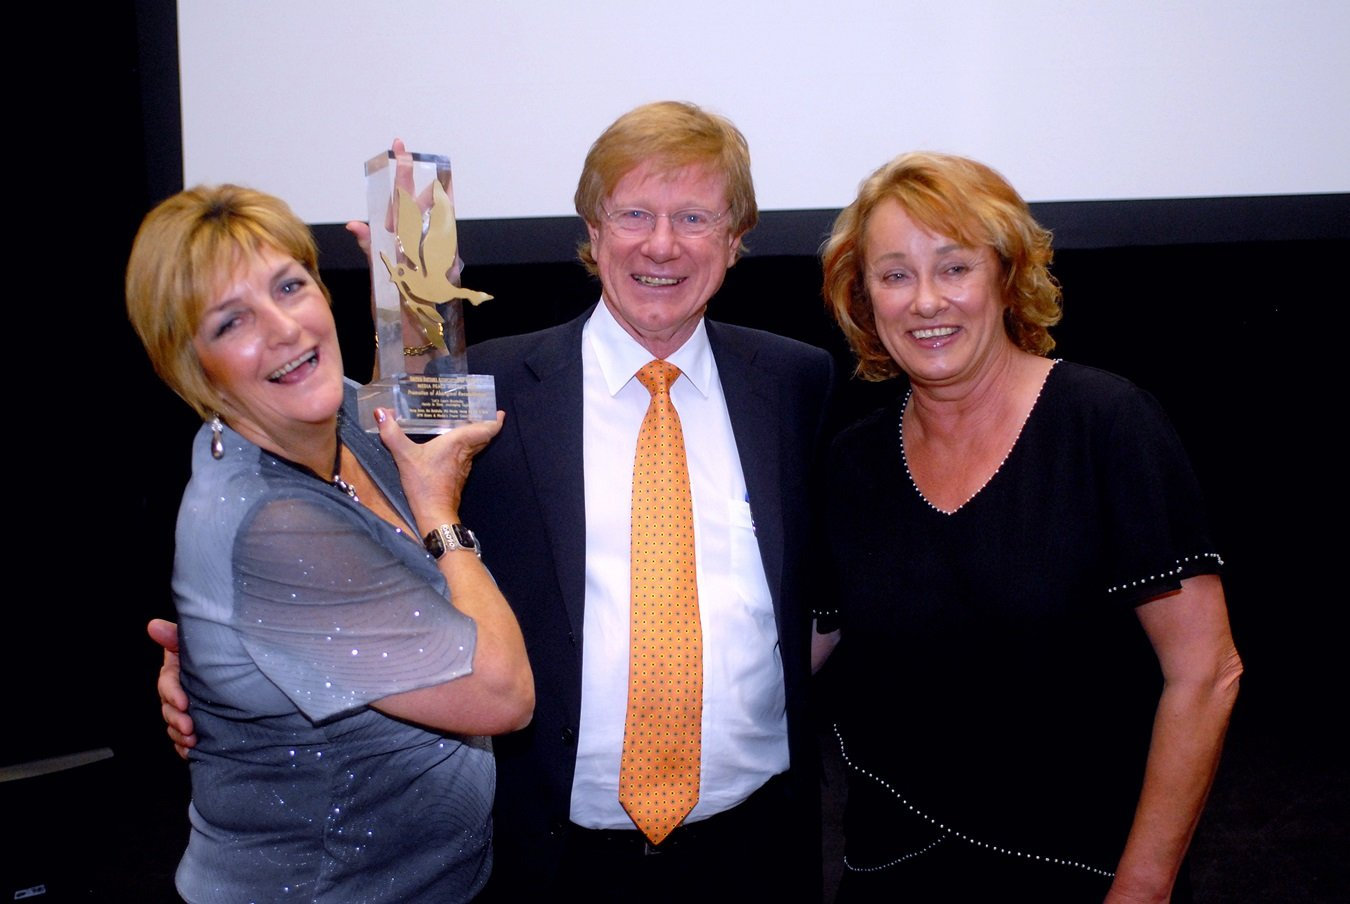 Then-Chronicle editor Nancy Bates and journalist Toni McRae receive the United Nations Promotion of Aboriginal Reconciliation award from veteran ABC journalist Kerry O'Brien. The award was given for the Chronicle's weekly series